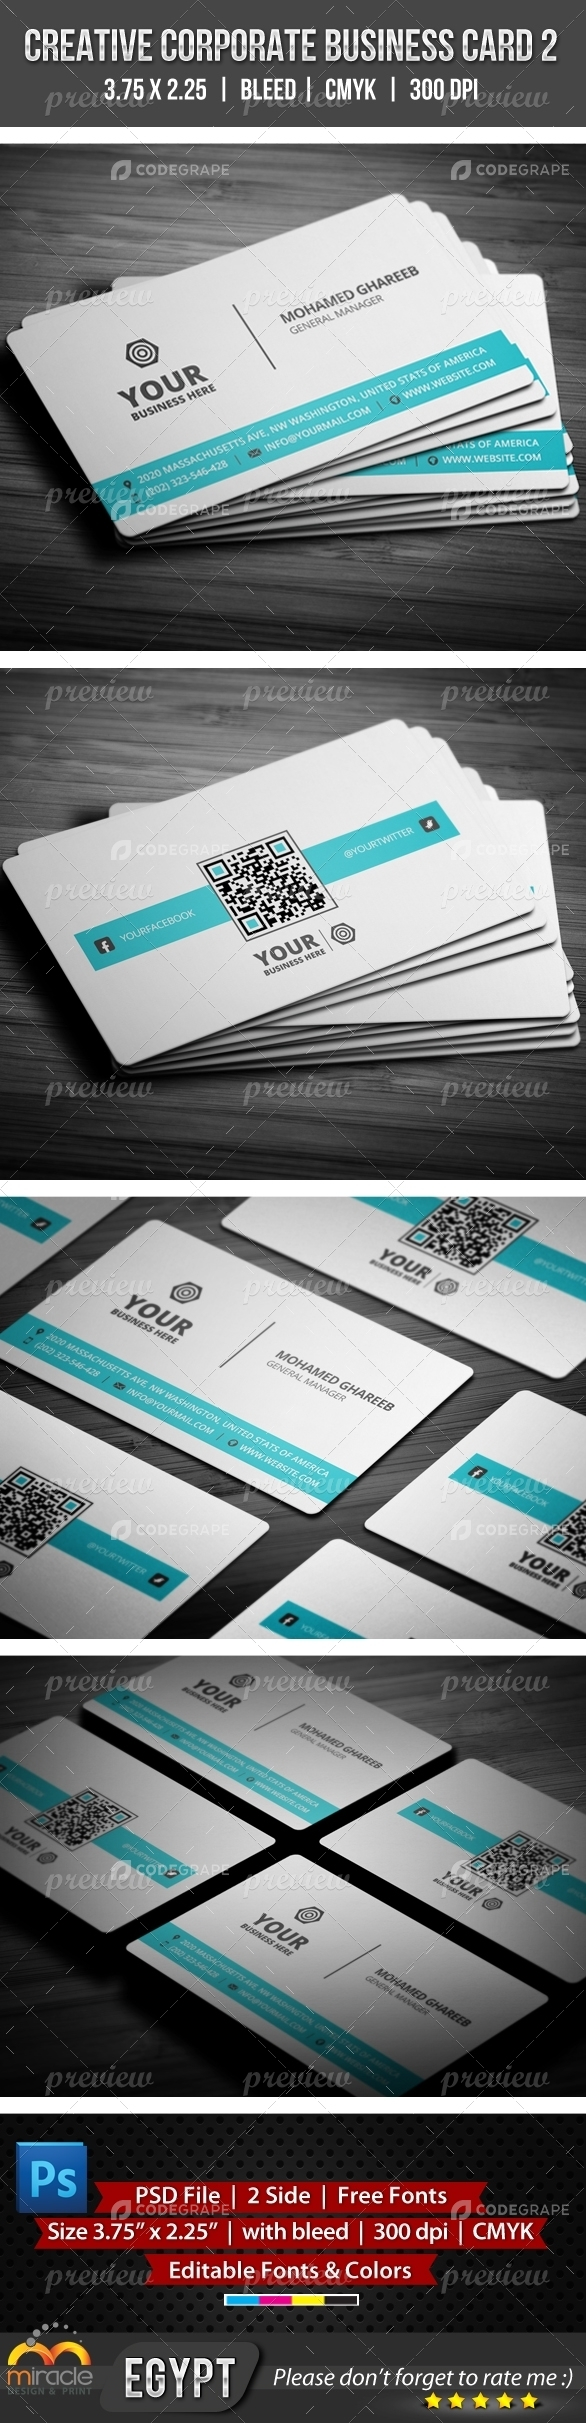 Creative Corporate Business Card 2